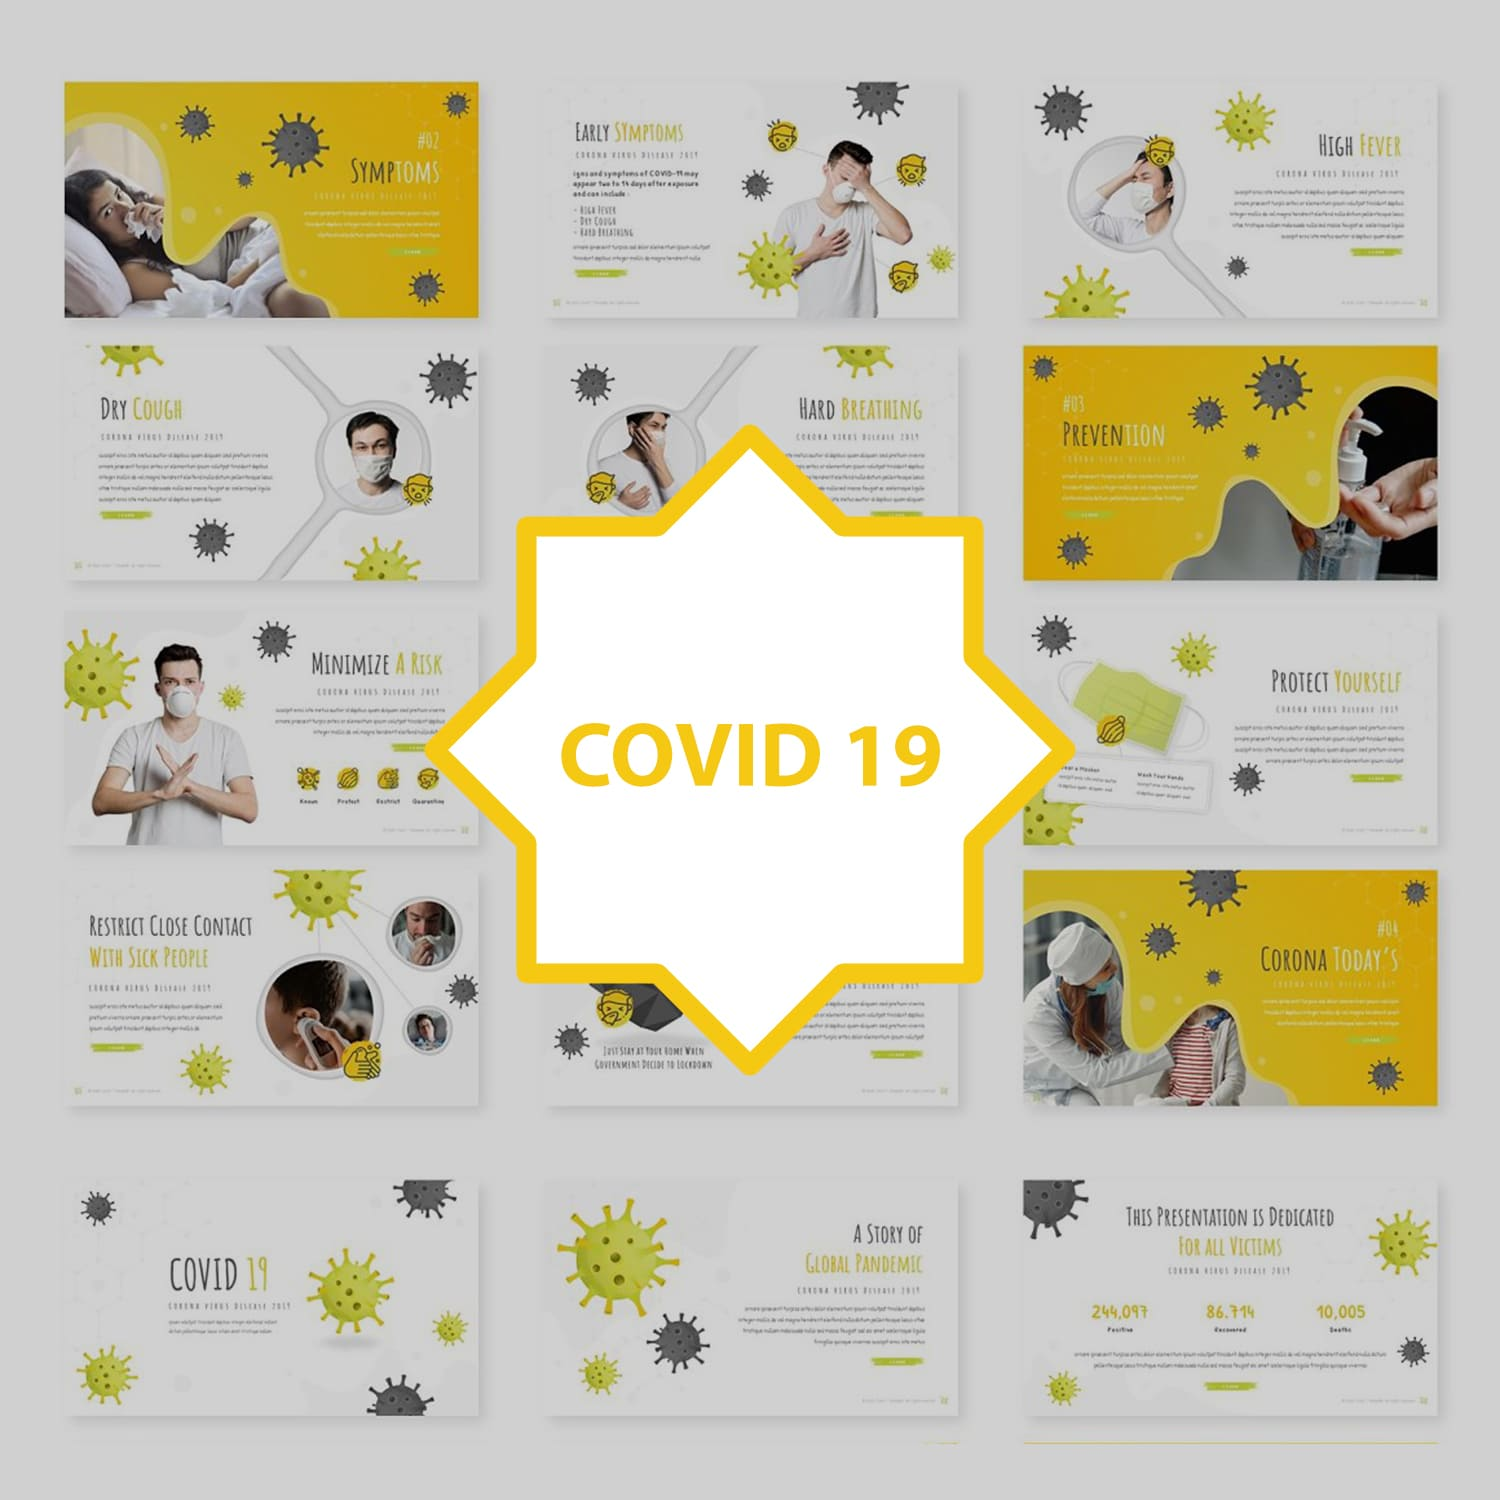 Covid 19 - Powerpoint Template main cover.